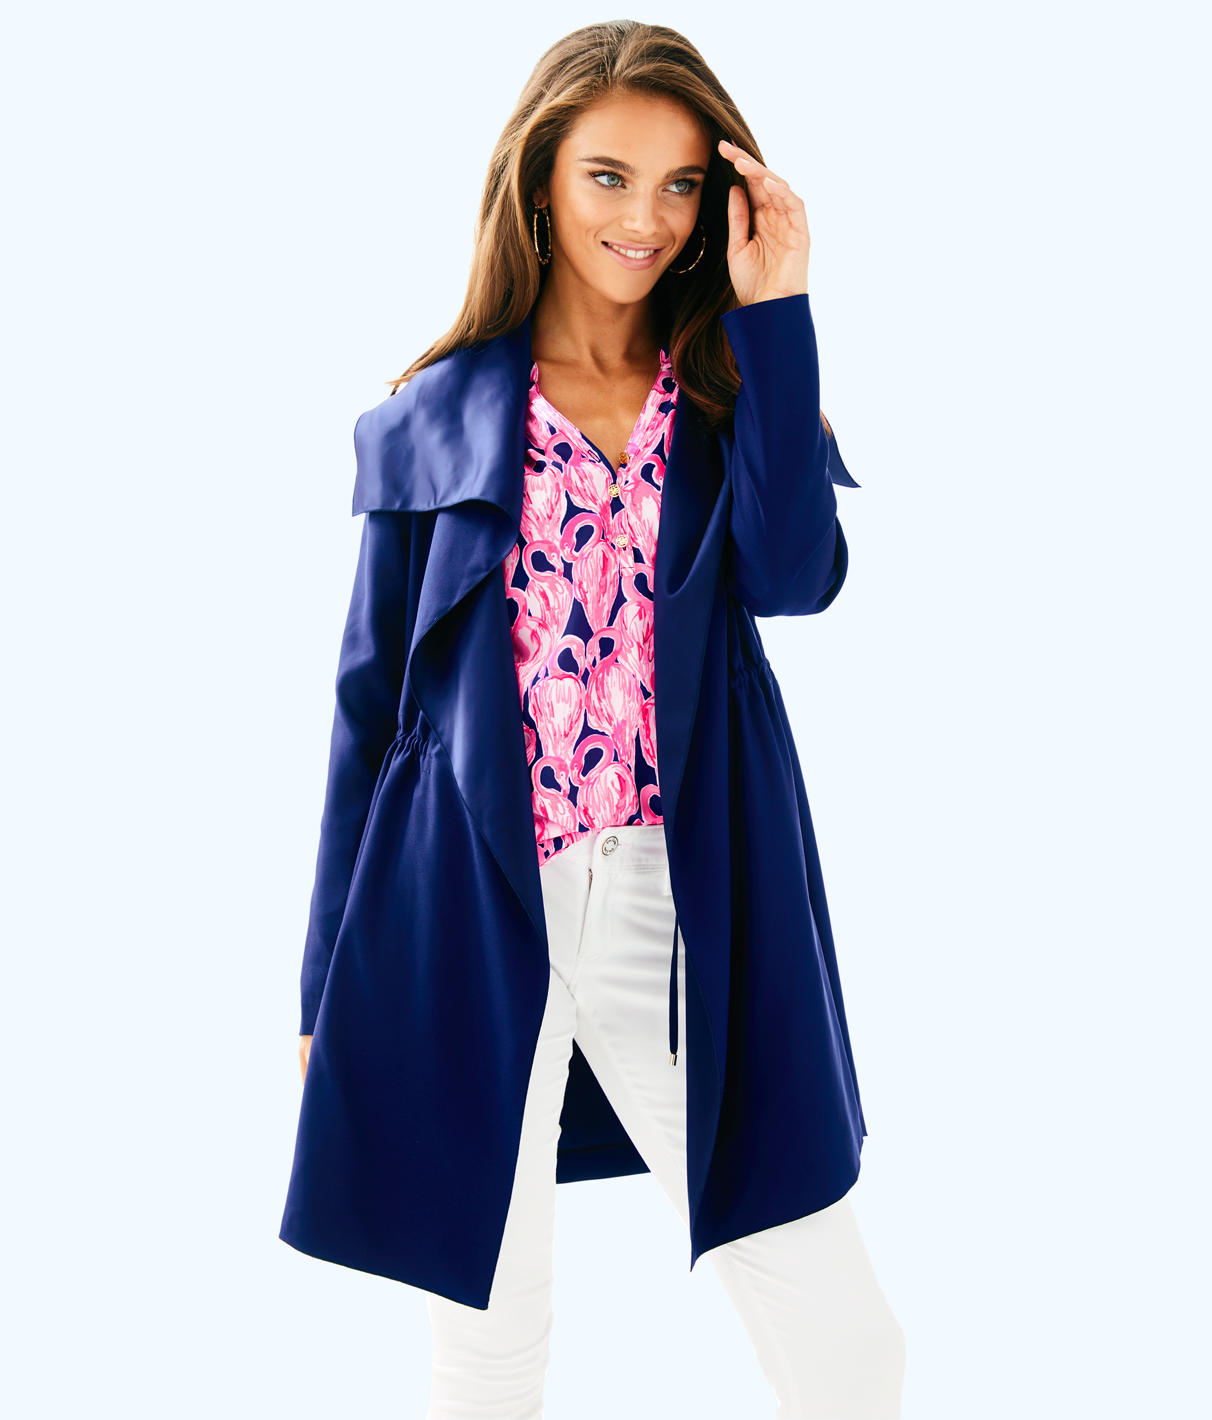 Lilly Pulitzer Lilly Pulitzer Womens Valeria Dress Coat